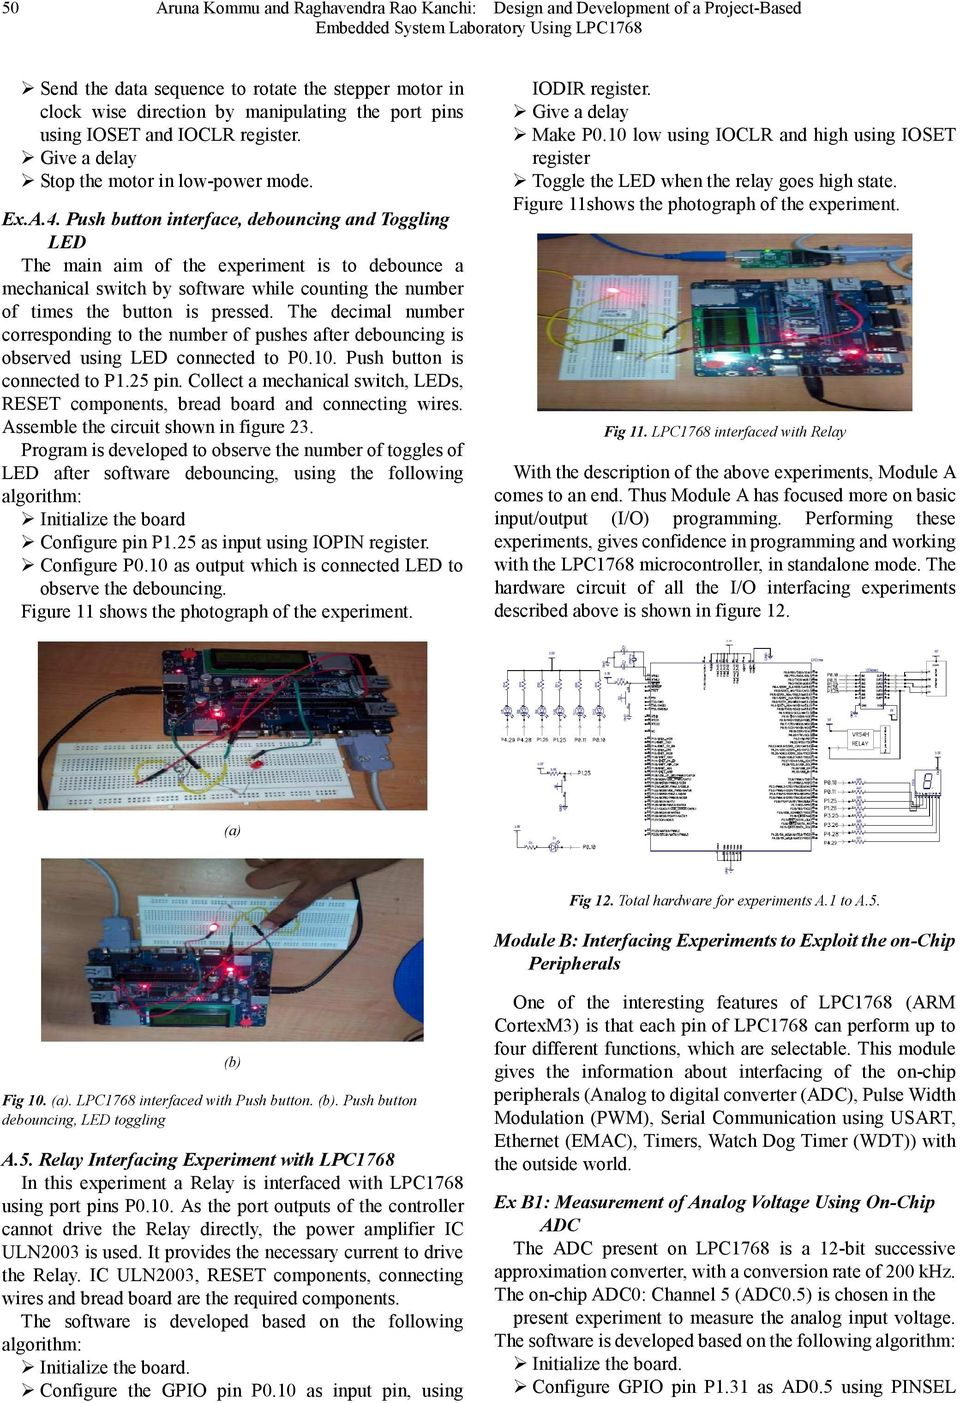 Design And Development Of A Project Based Embedded System Laboratory Interfacing Relay With Pic Microcontroller Using Uln2003 Push Button Interface Debouncing Toggling Led The Main Aim Experiment Is To